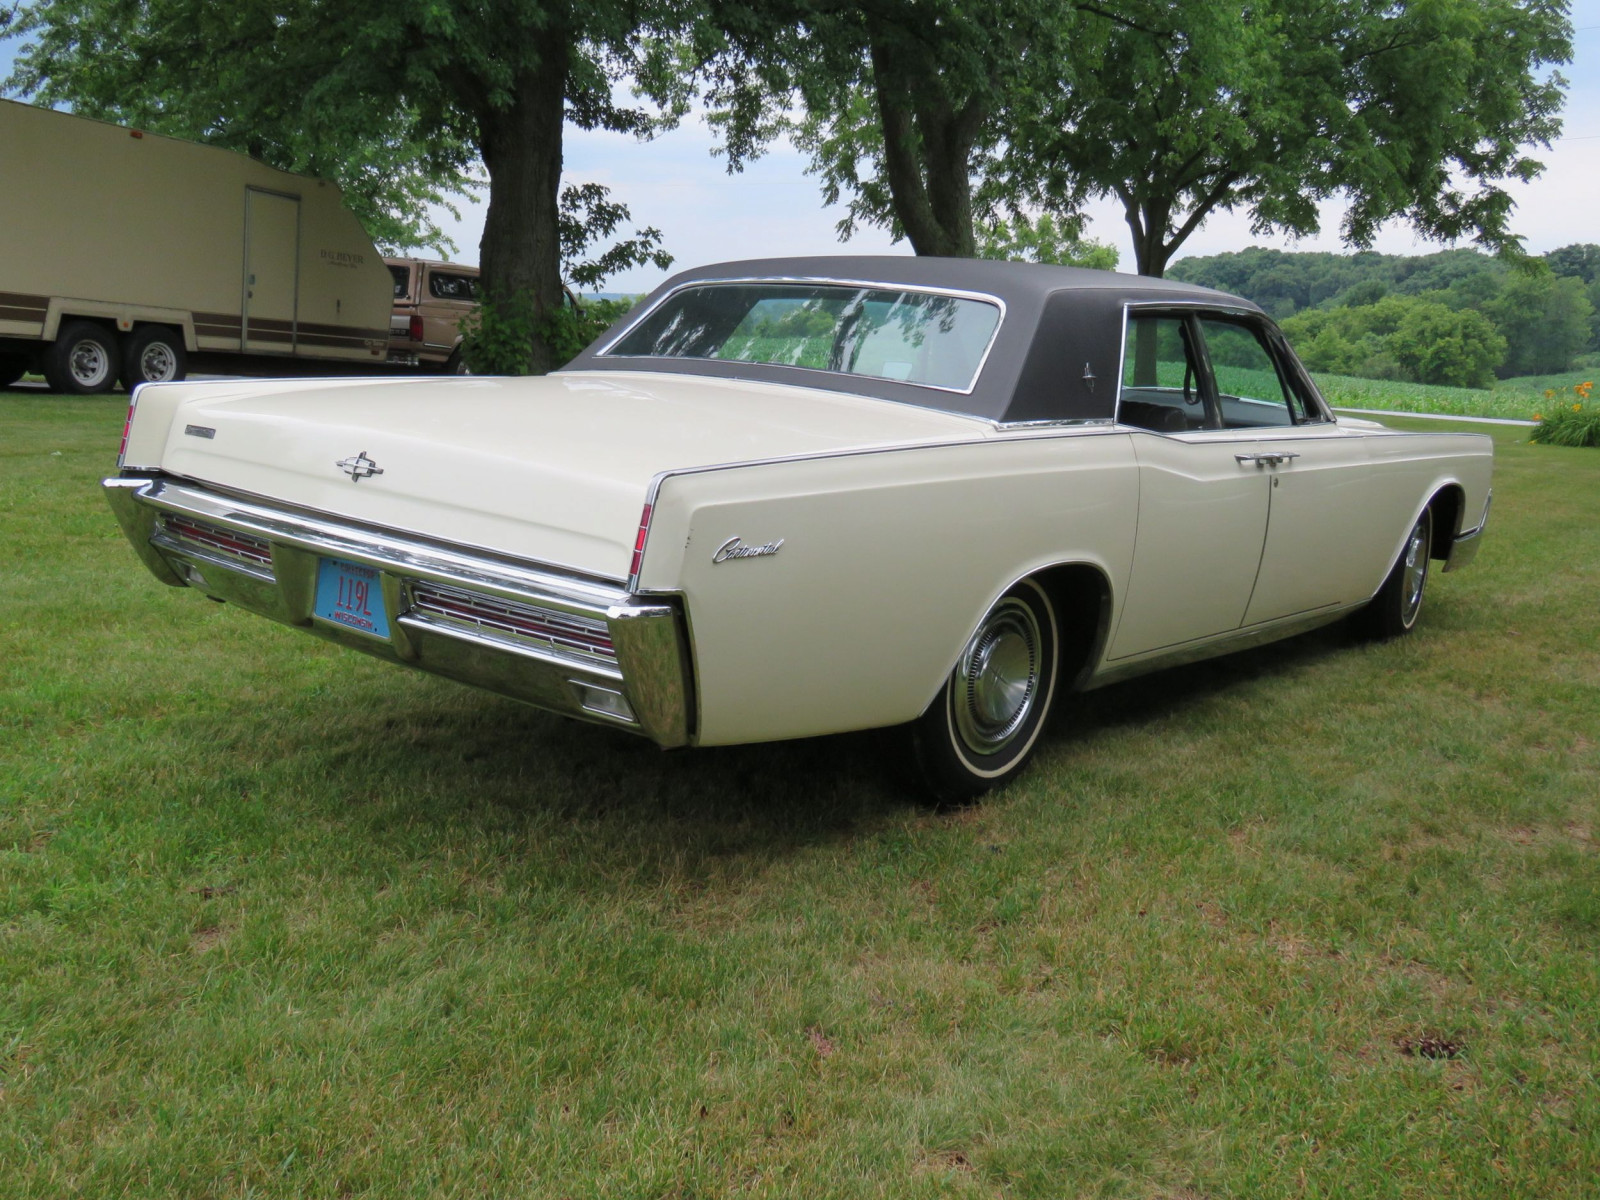 1967 Lincoln Continental 4dr HT Suicide Sedan - Image 5